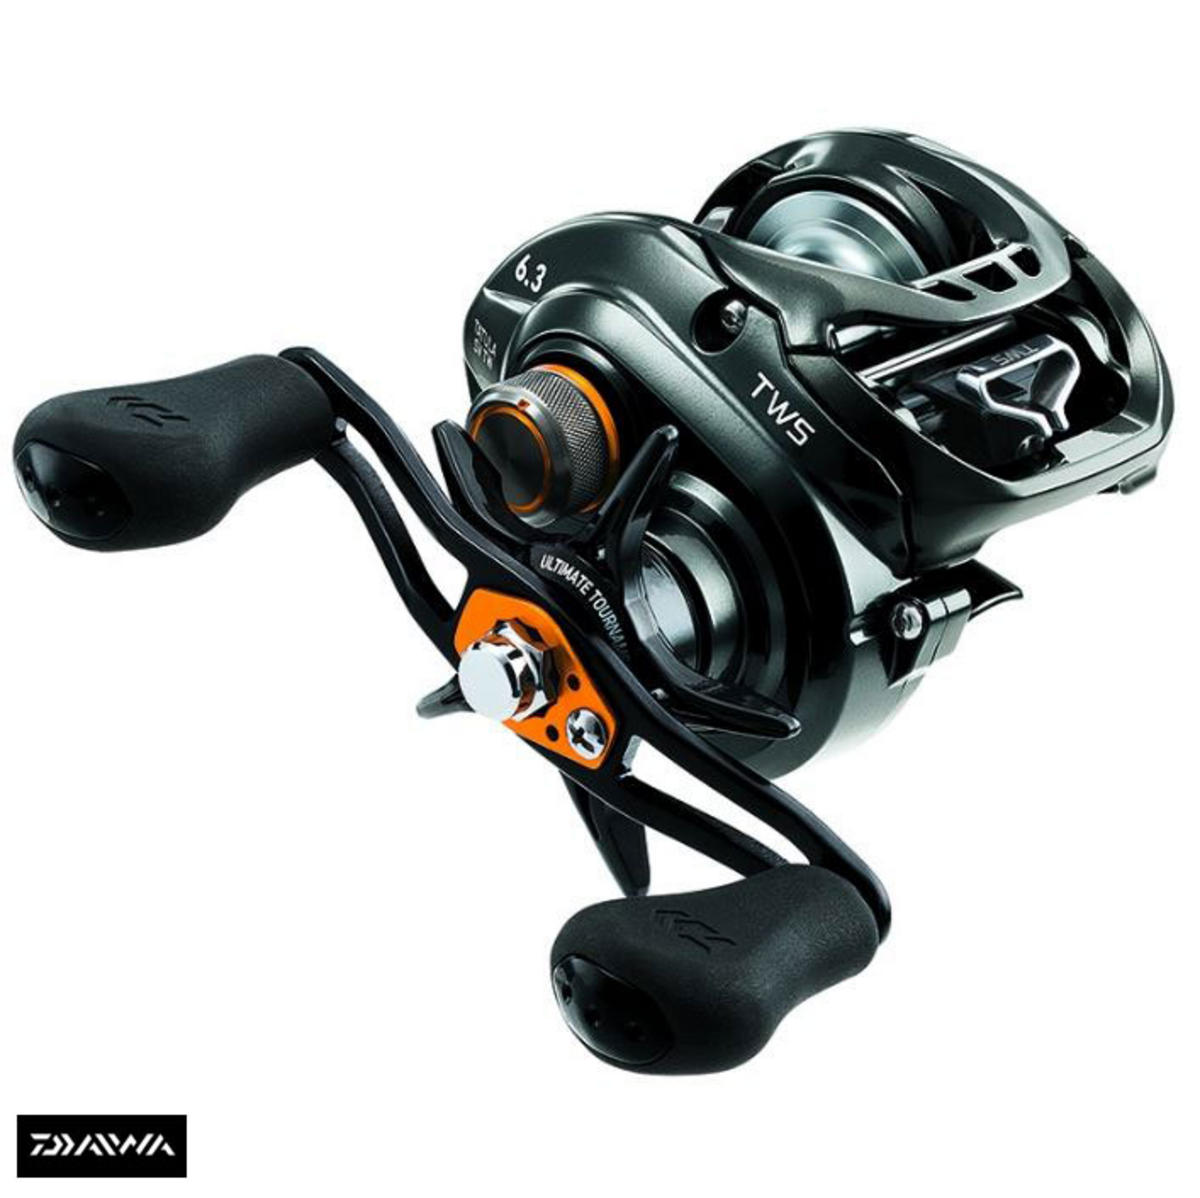 New Daiwa Tatula SV TWS 103H Baitcasting Multiplier Fishing Reel - TASV103H